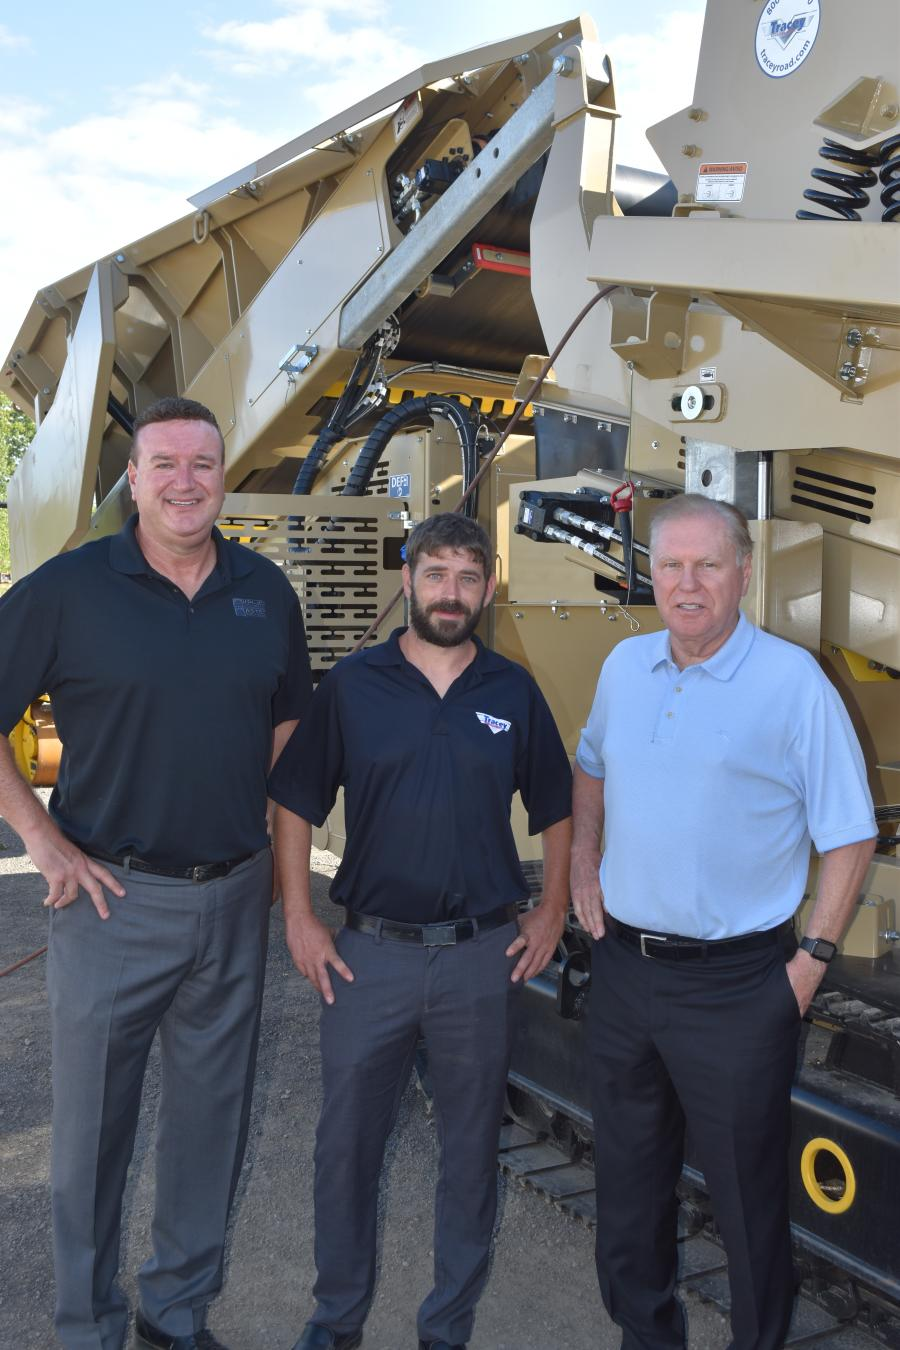 (L-R): Scott Collins, executive vice president of sales; David McLean, director of aggregate processing sales; and Jerry Tracey, president.